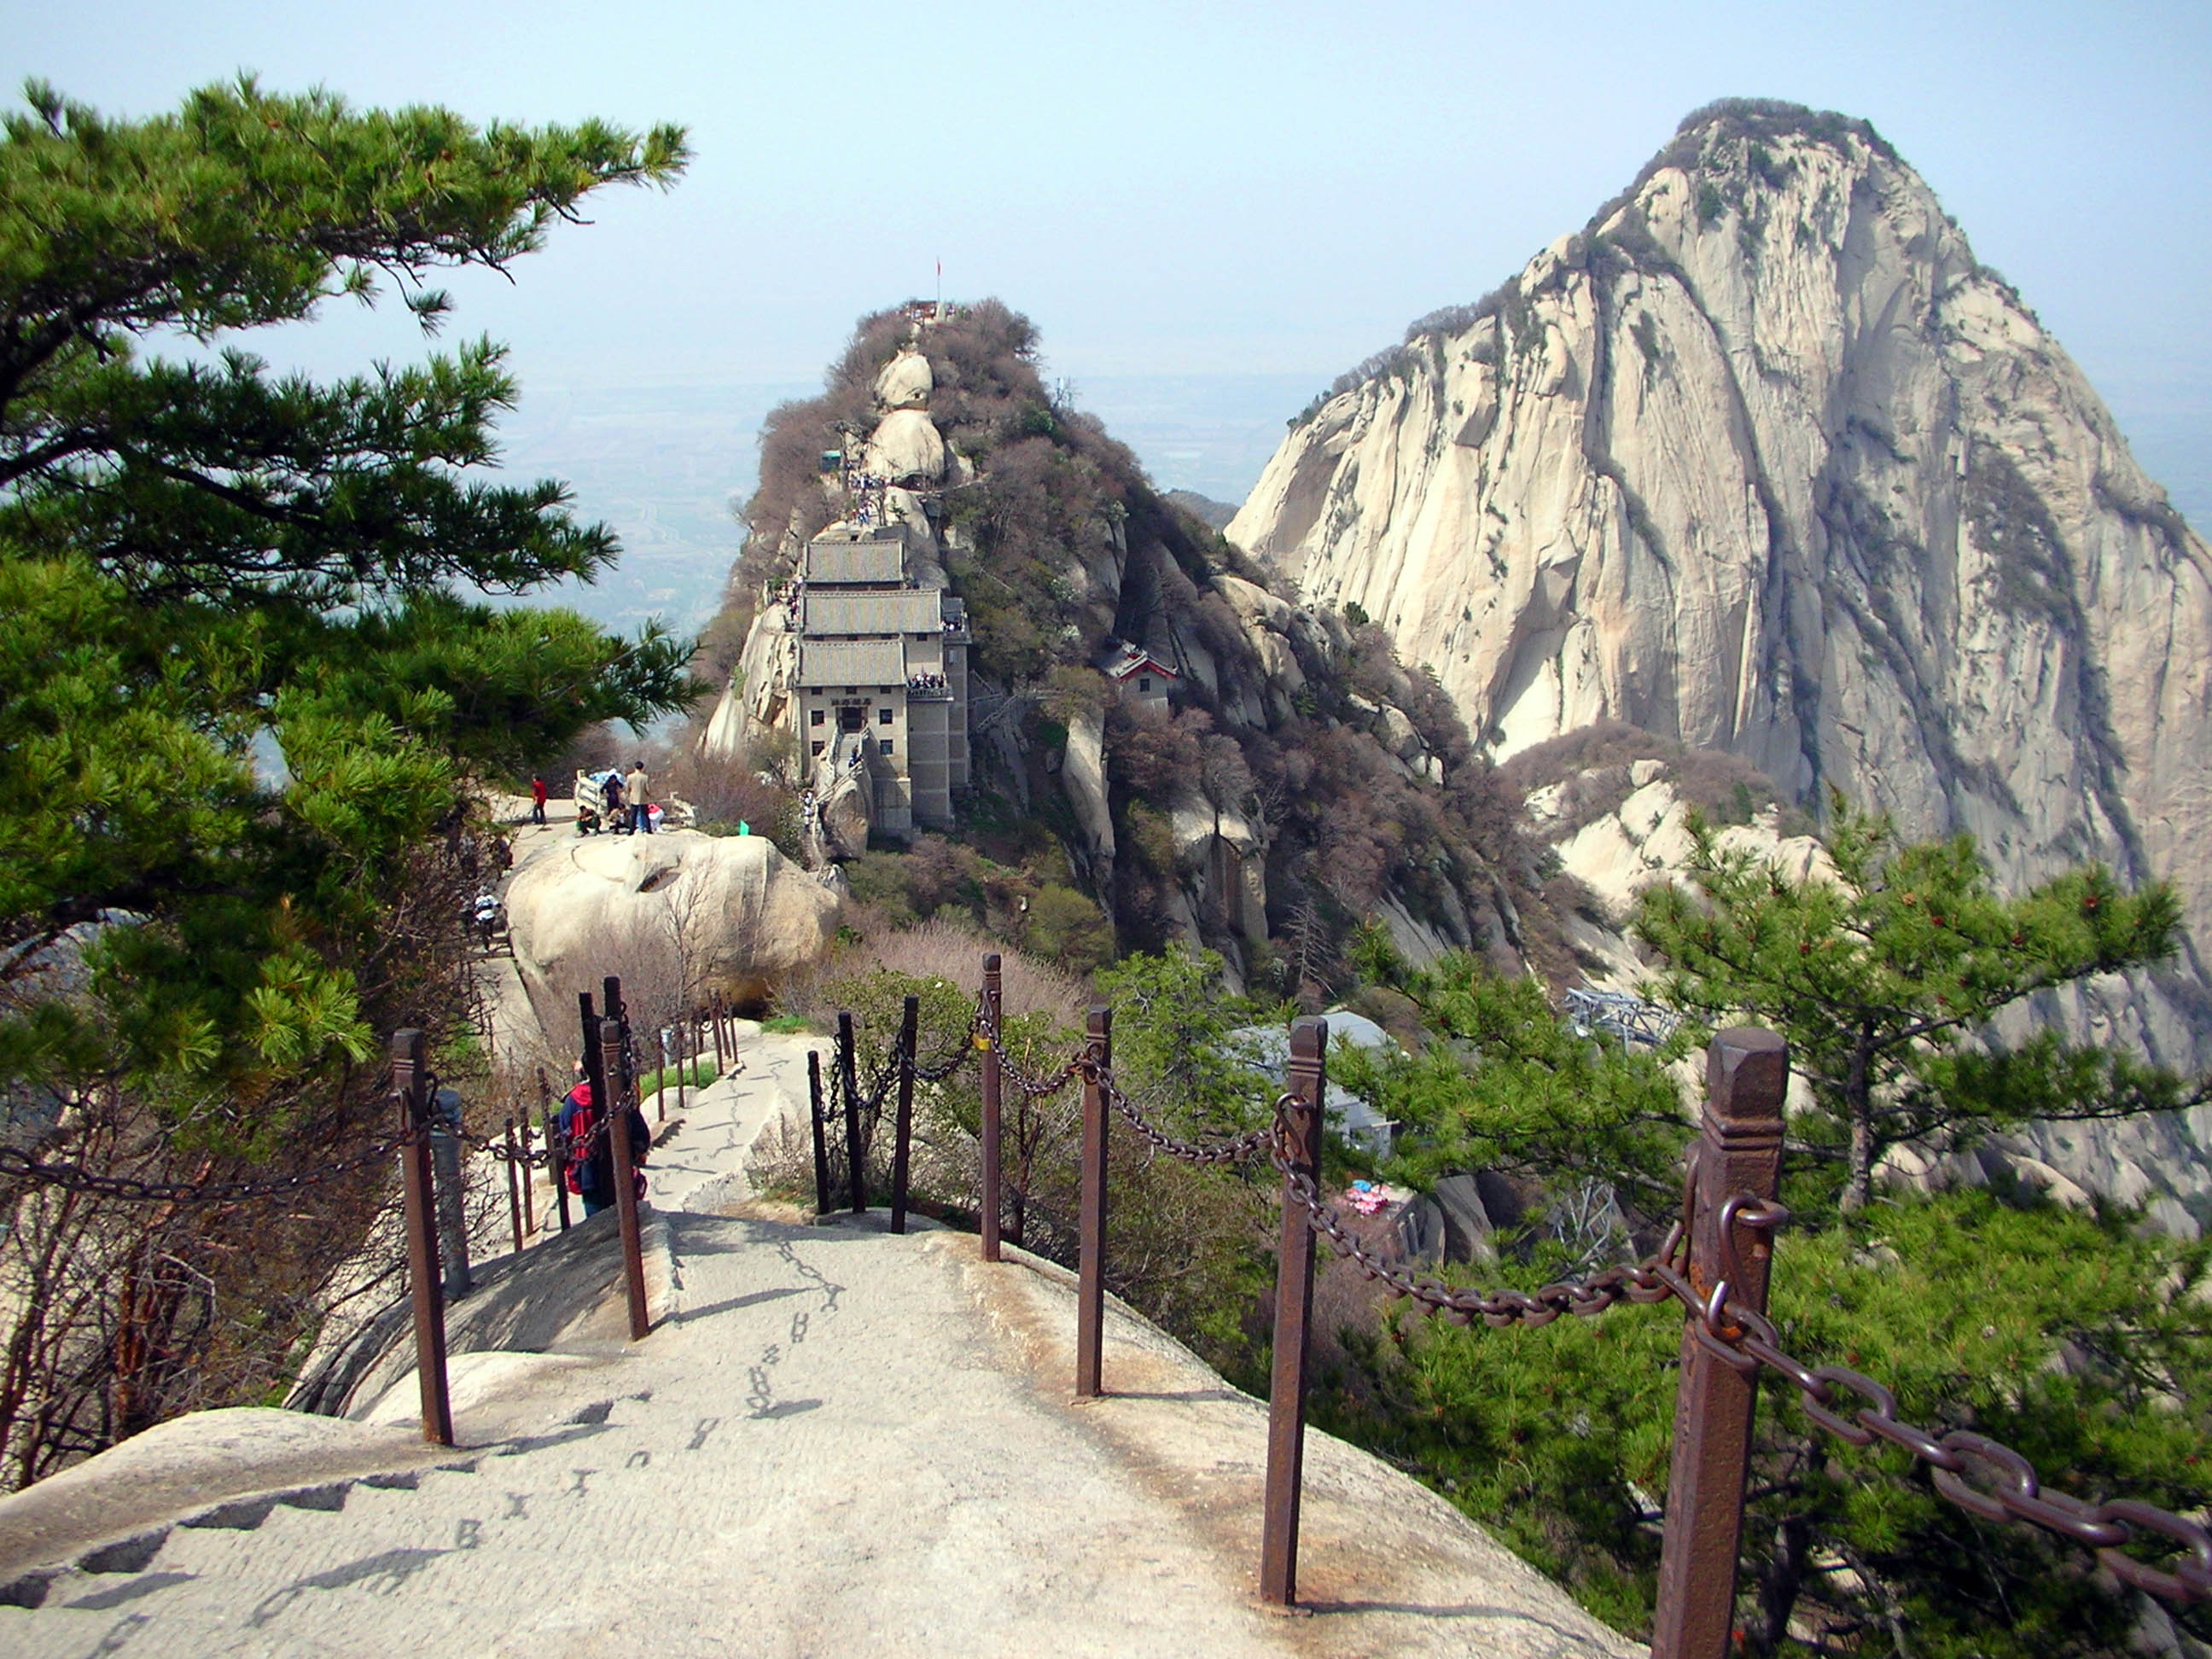 Visiting Shaanxi's Hua Shan (Five Petals Mountain) gave me an idea of where the inspiration for traditional Chinese painting originates.